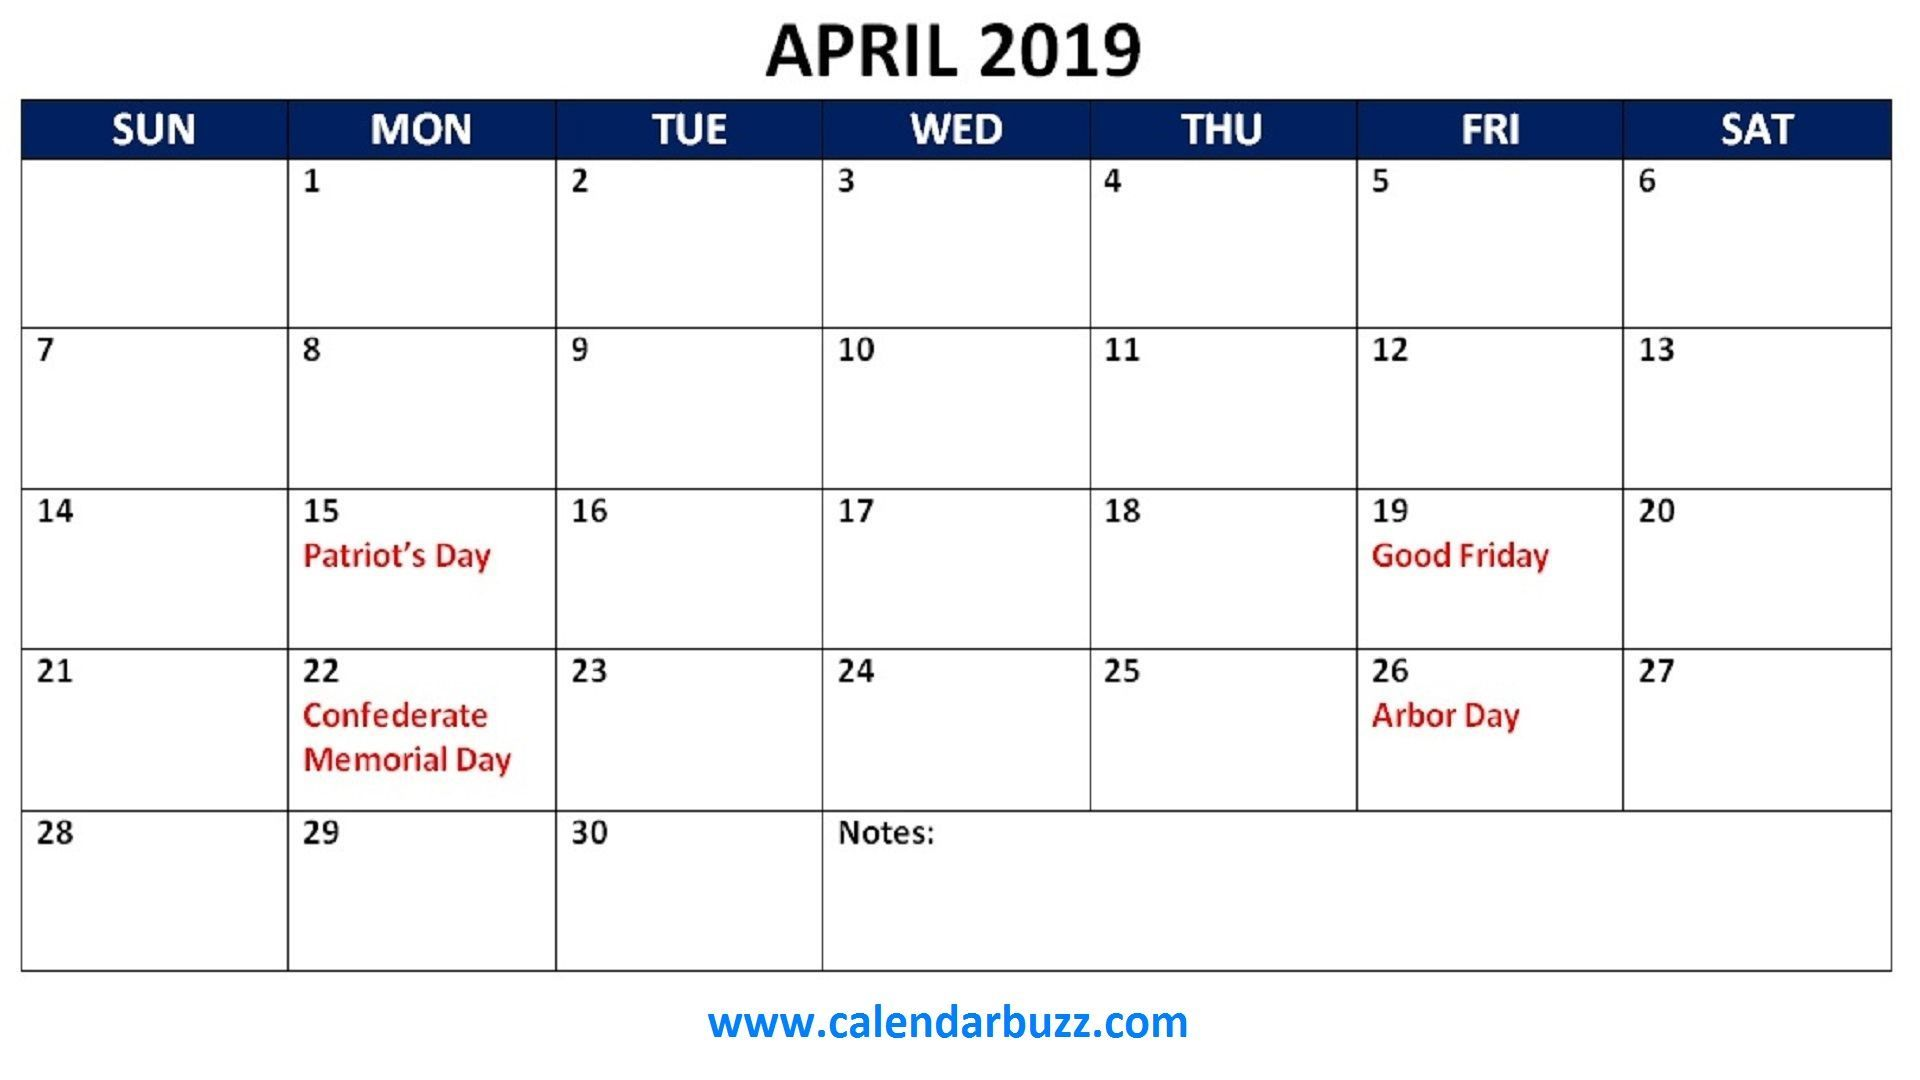 April 2019 Calendar With Holidays Printable | 150+ April ...